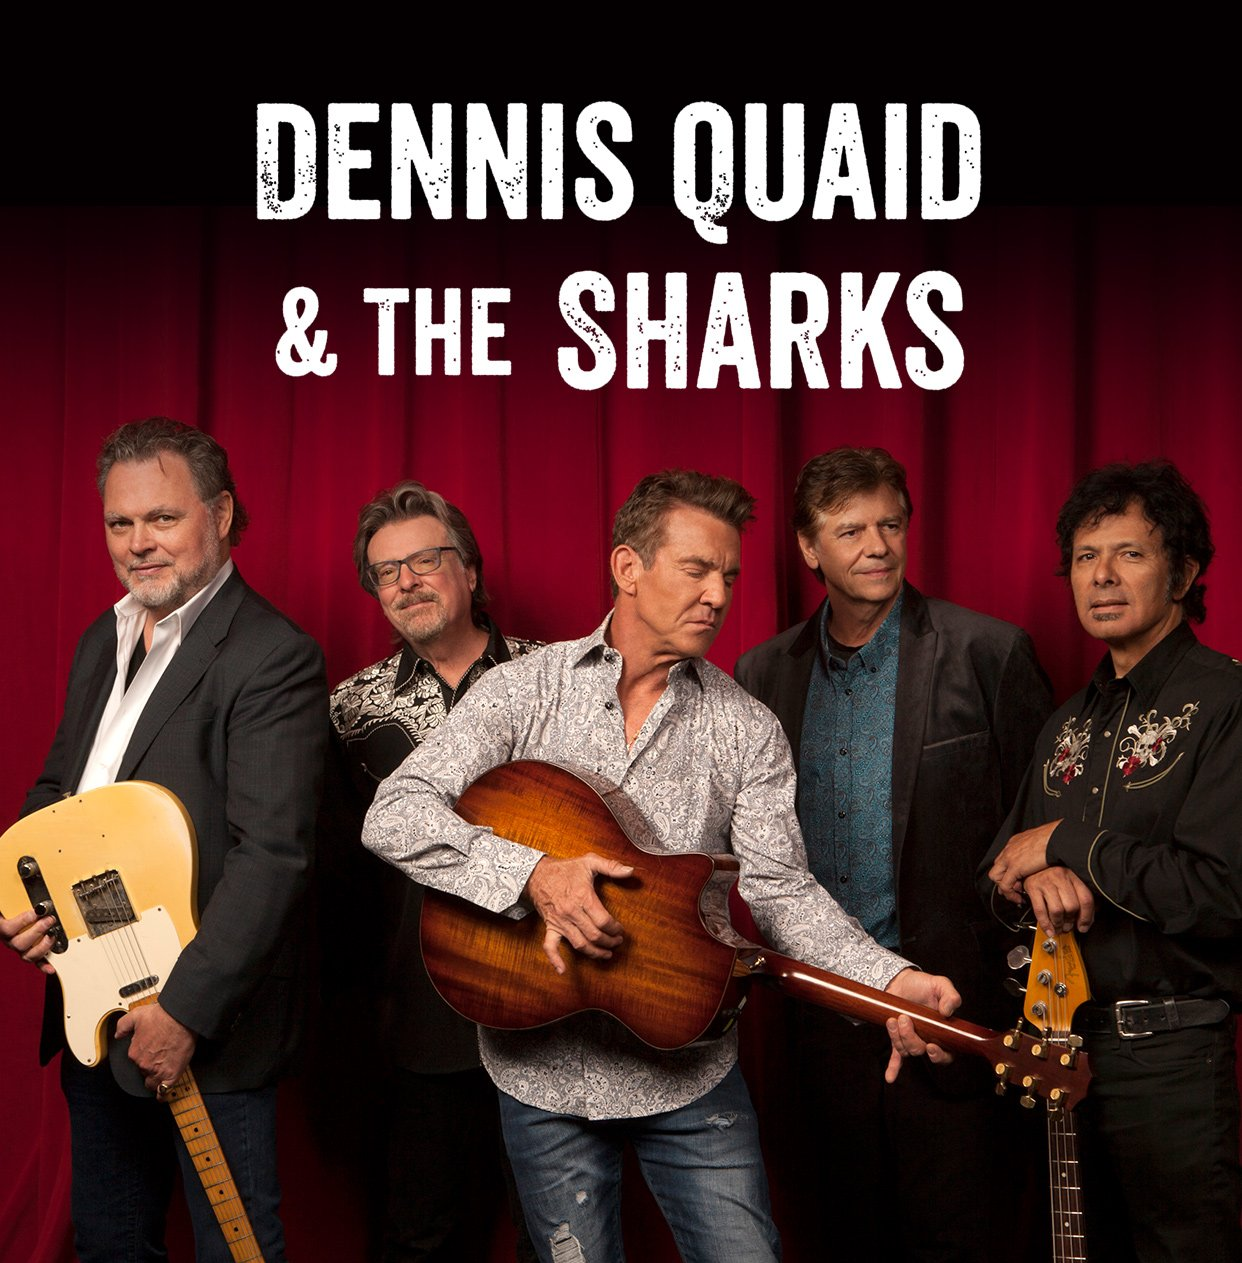 Dennis Quaid & the Sharks